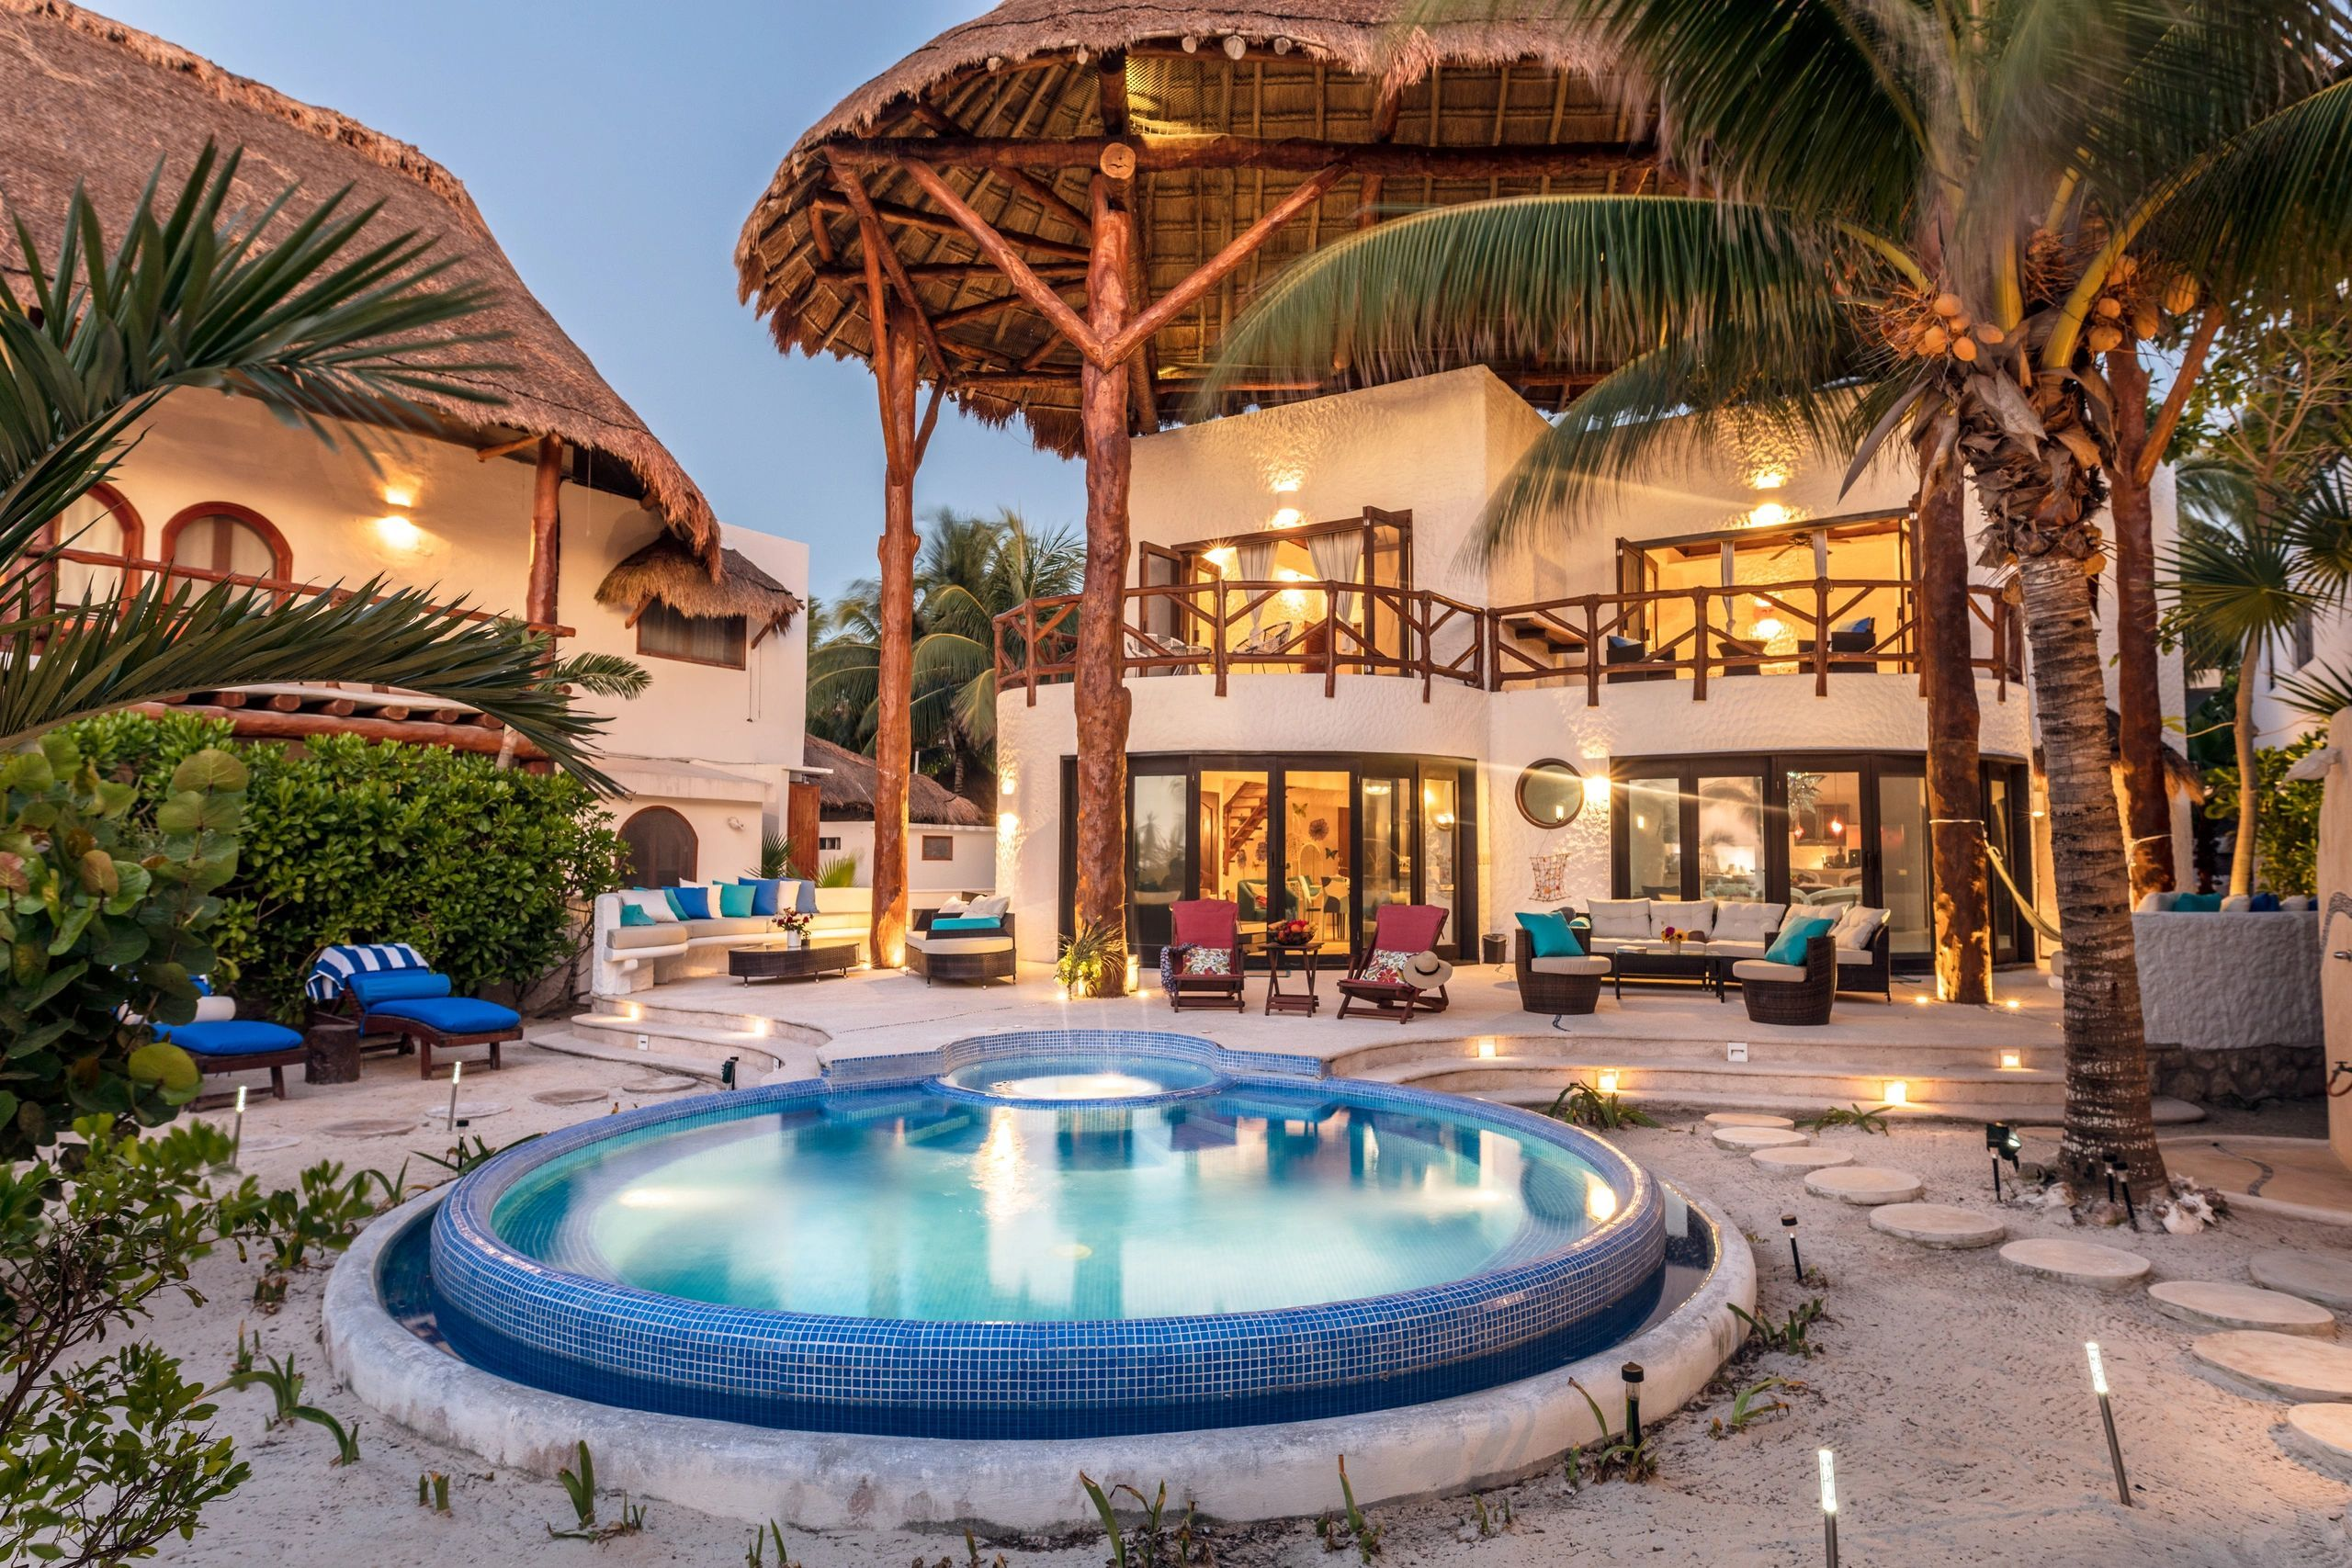 Beach house for rent in Holbox, Mexico. Vacation home ... |Vacation Rentals Holbox Mexico